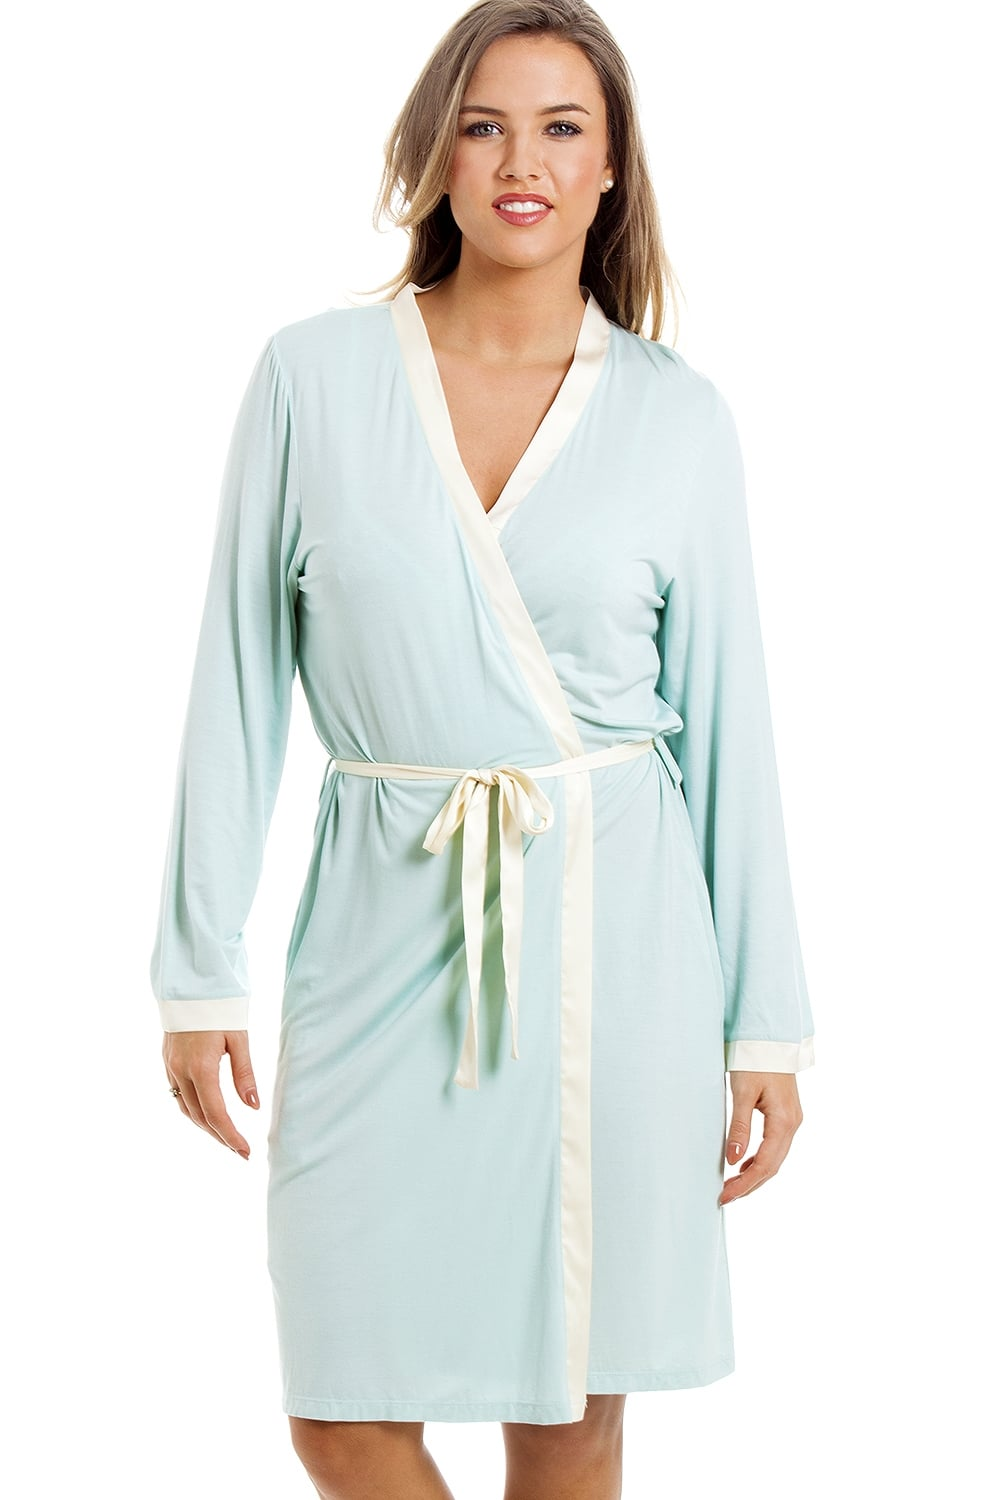 6e23f9151a Camille Stylish Knee Length Long Sleeve Mint Green Dressing Gown